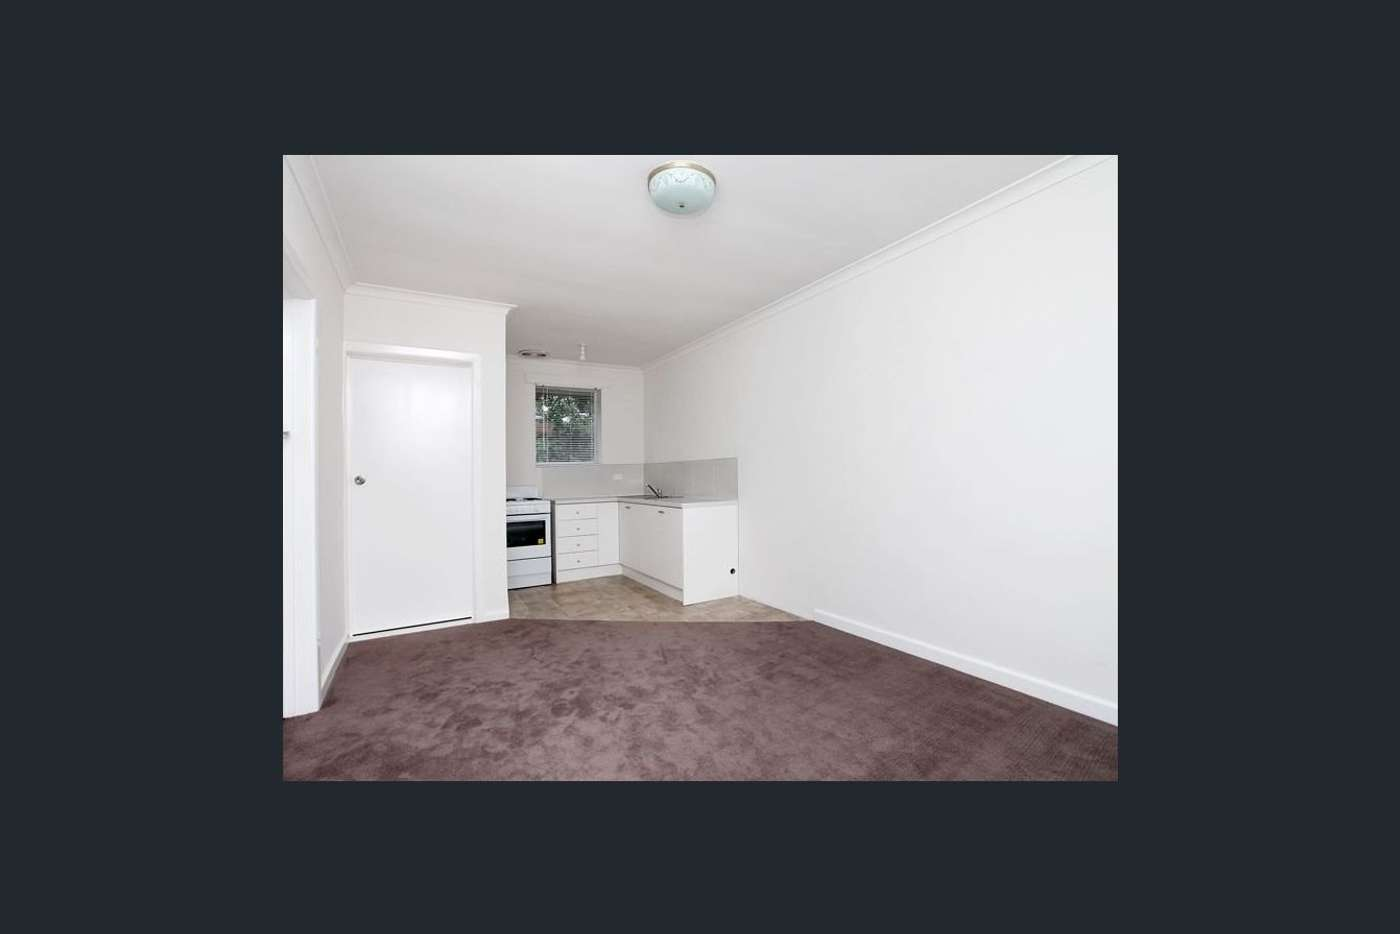 Main view of Homely apartment listing, 13/6 Carmichael Street, West Footscray VIC 3012